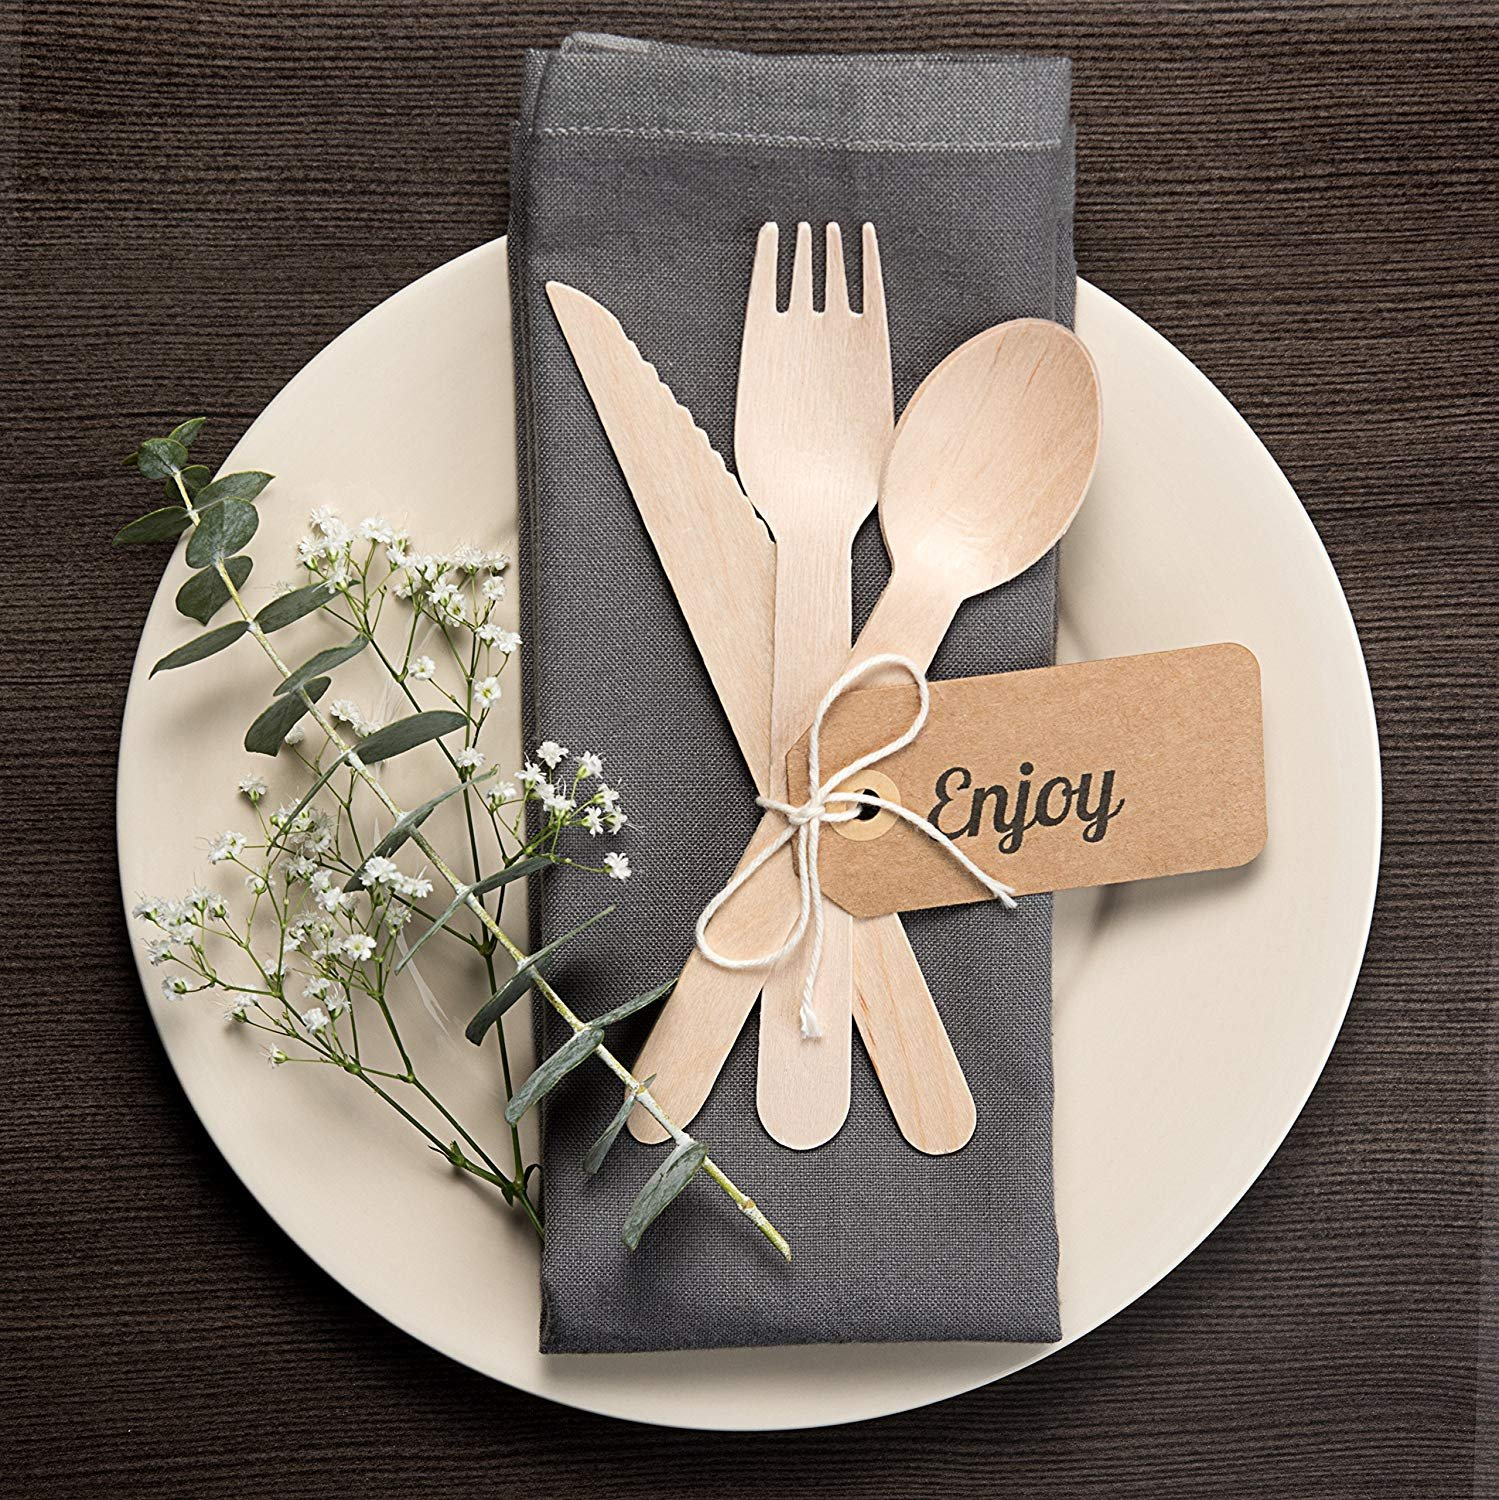 Wood set cutlery biodegradable-disposable-eco friendly-100 wooden forks-100 knives-100 spoons-For Parties, Picnics, Events & Weddings – Durable & Environmentally Safe by OFO WOOD (Image #2)